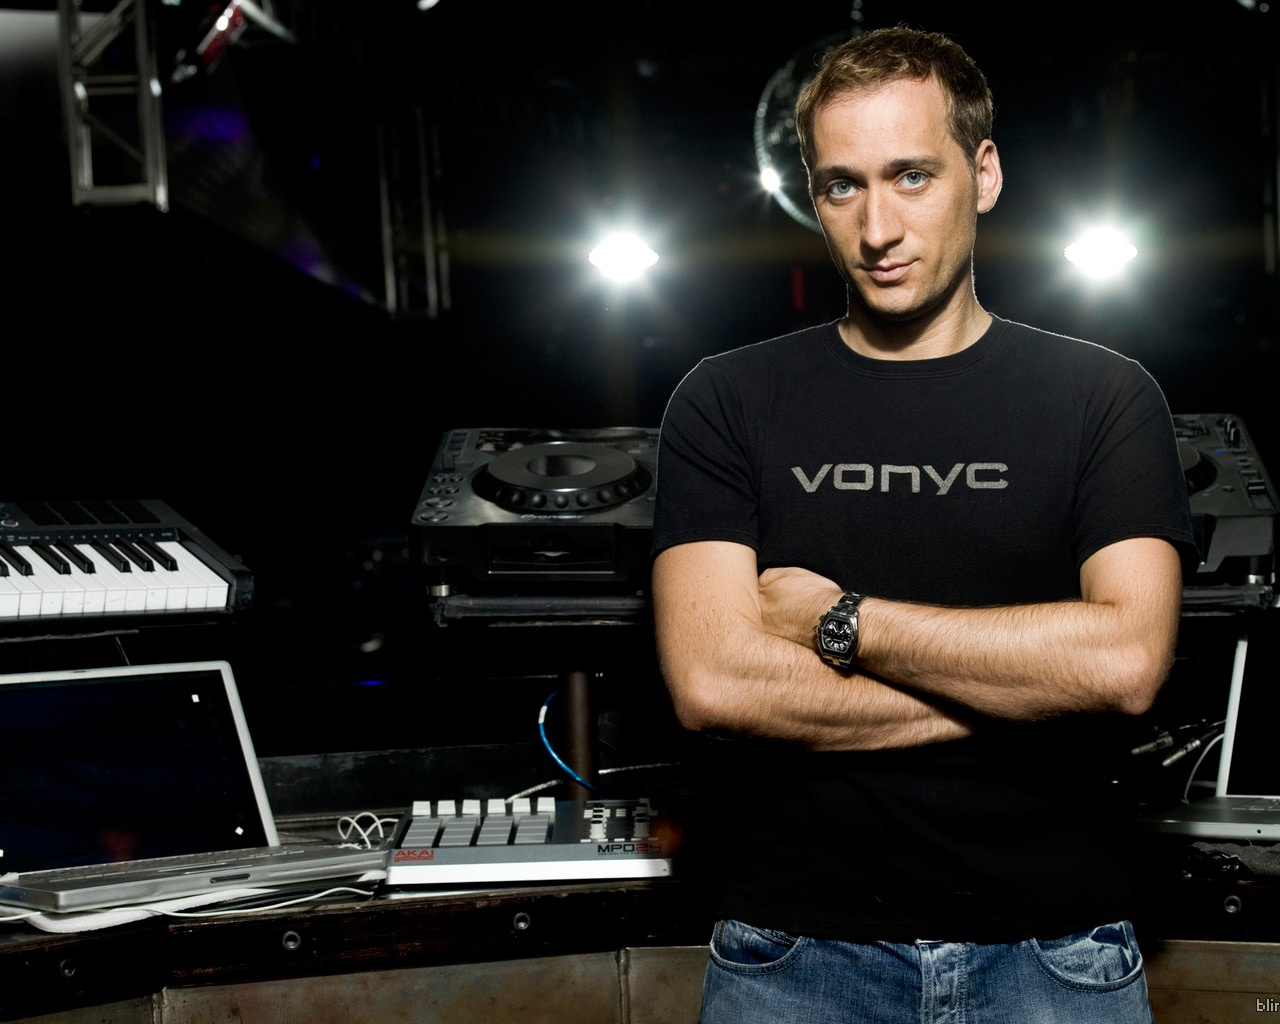 paul-van-dyk-soletron-exclusive